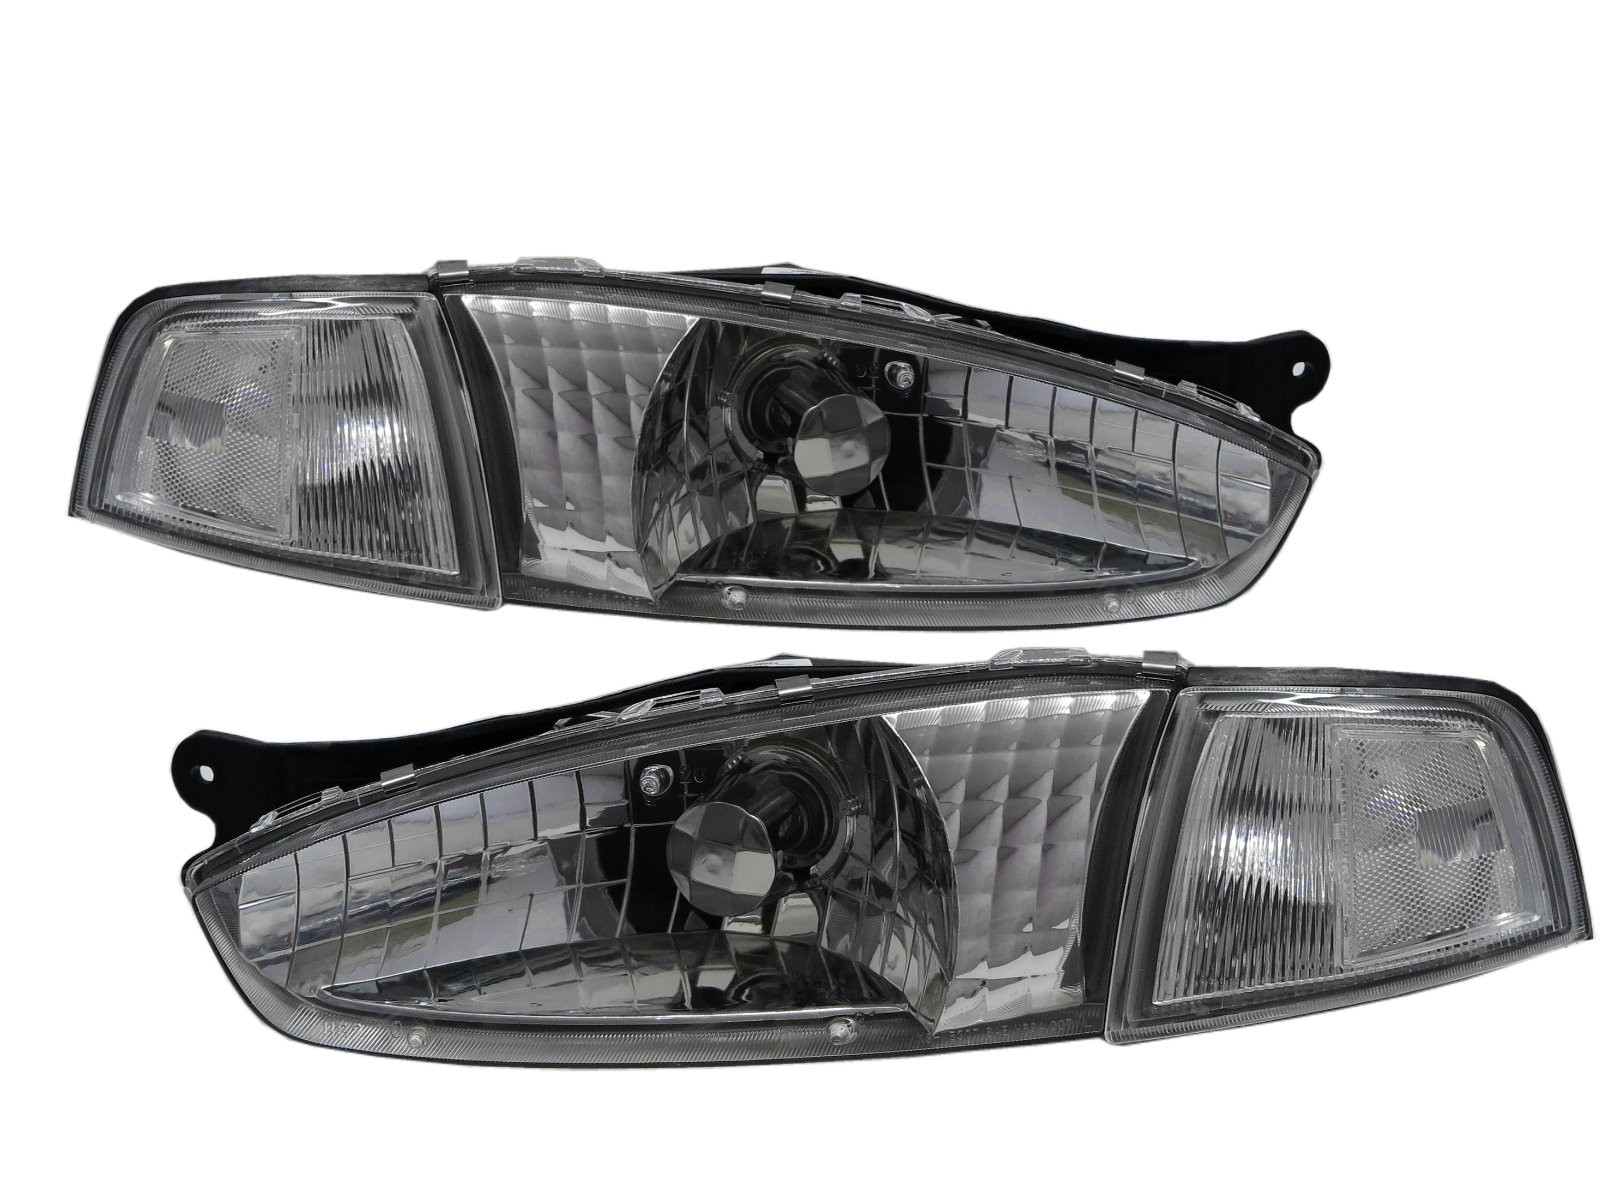 CrazyTheGod Lancer 07/96-07/98 Coupe 2D Clear Headlight Headlamp Chrome for Mitsubishi LHD